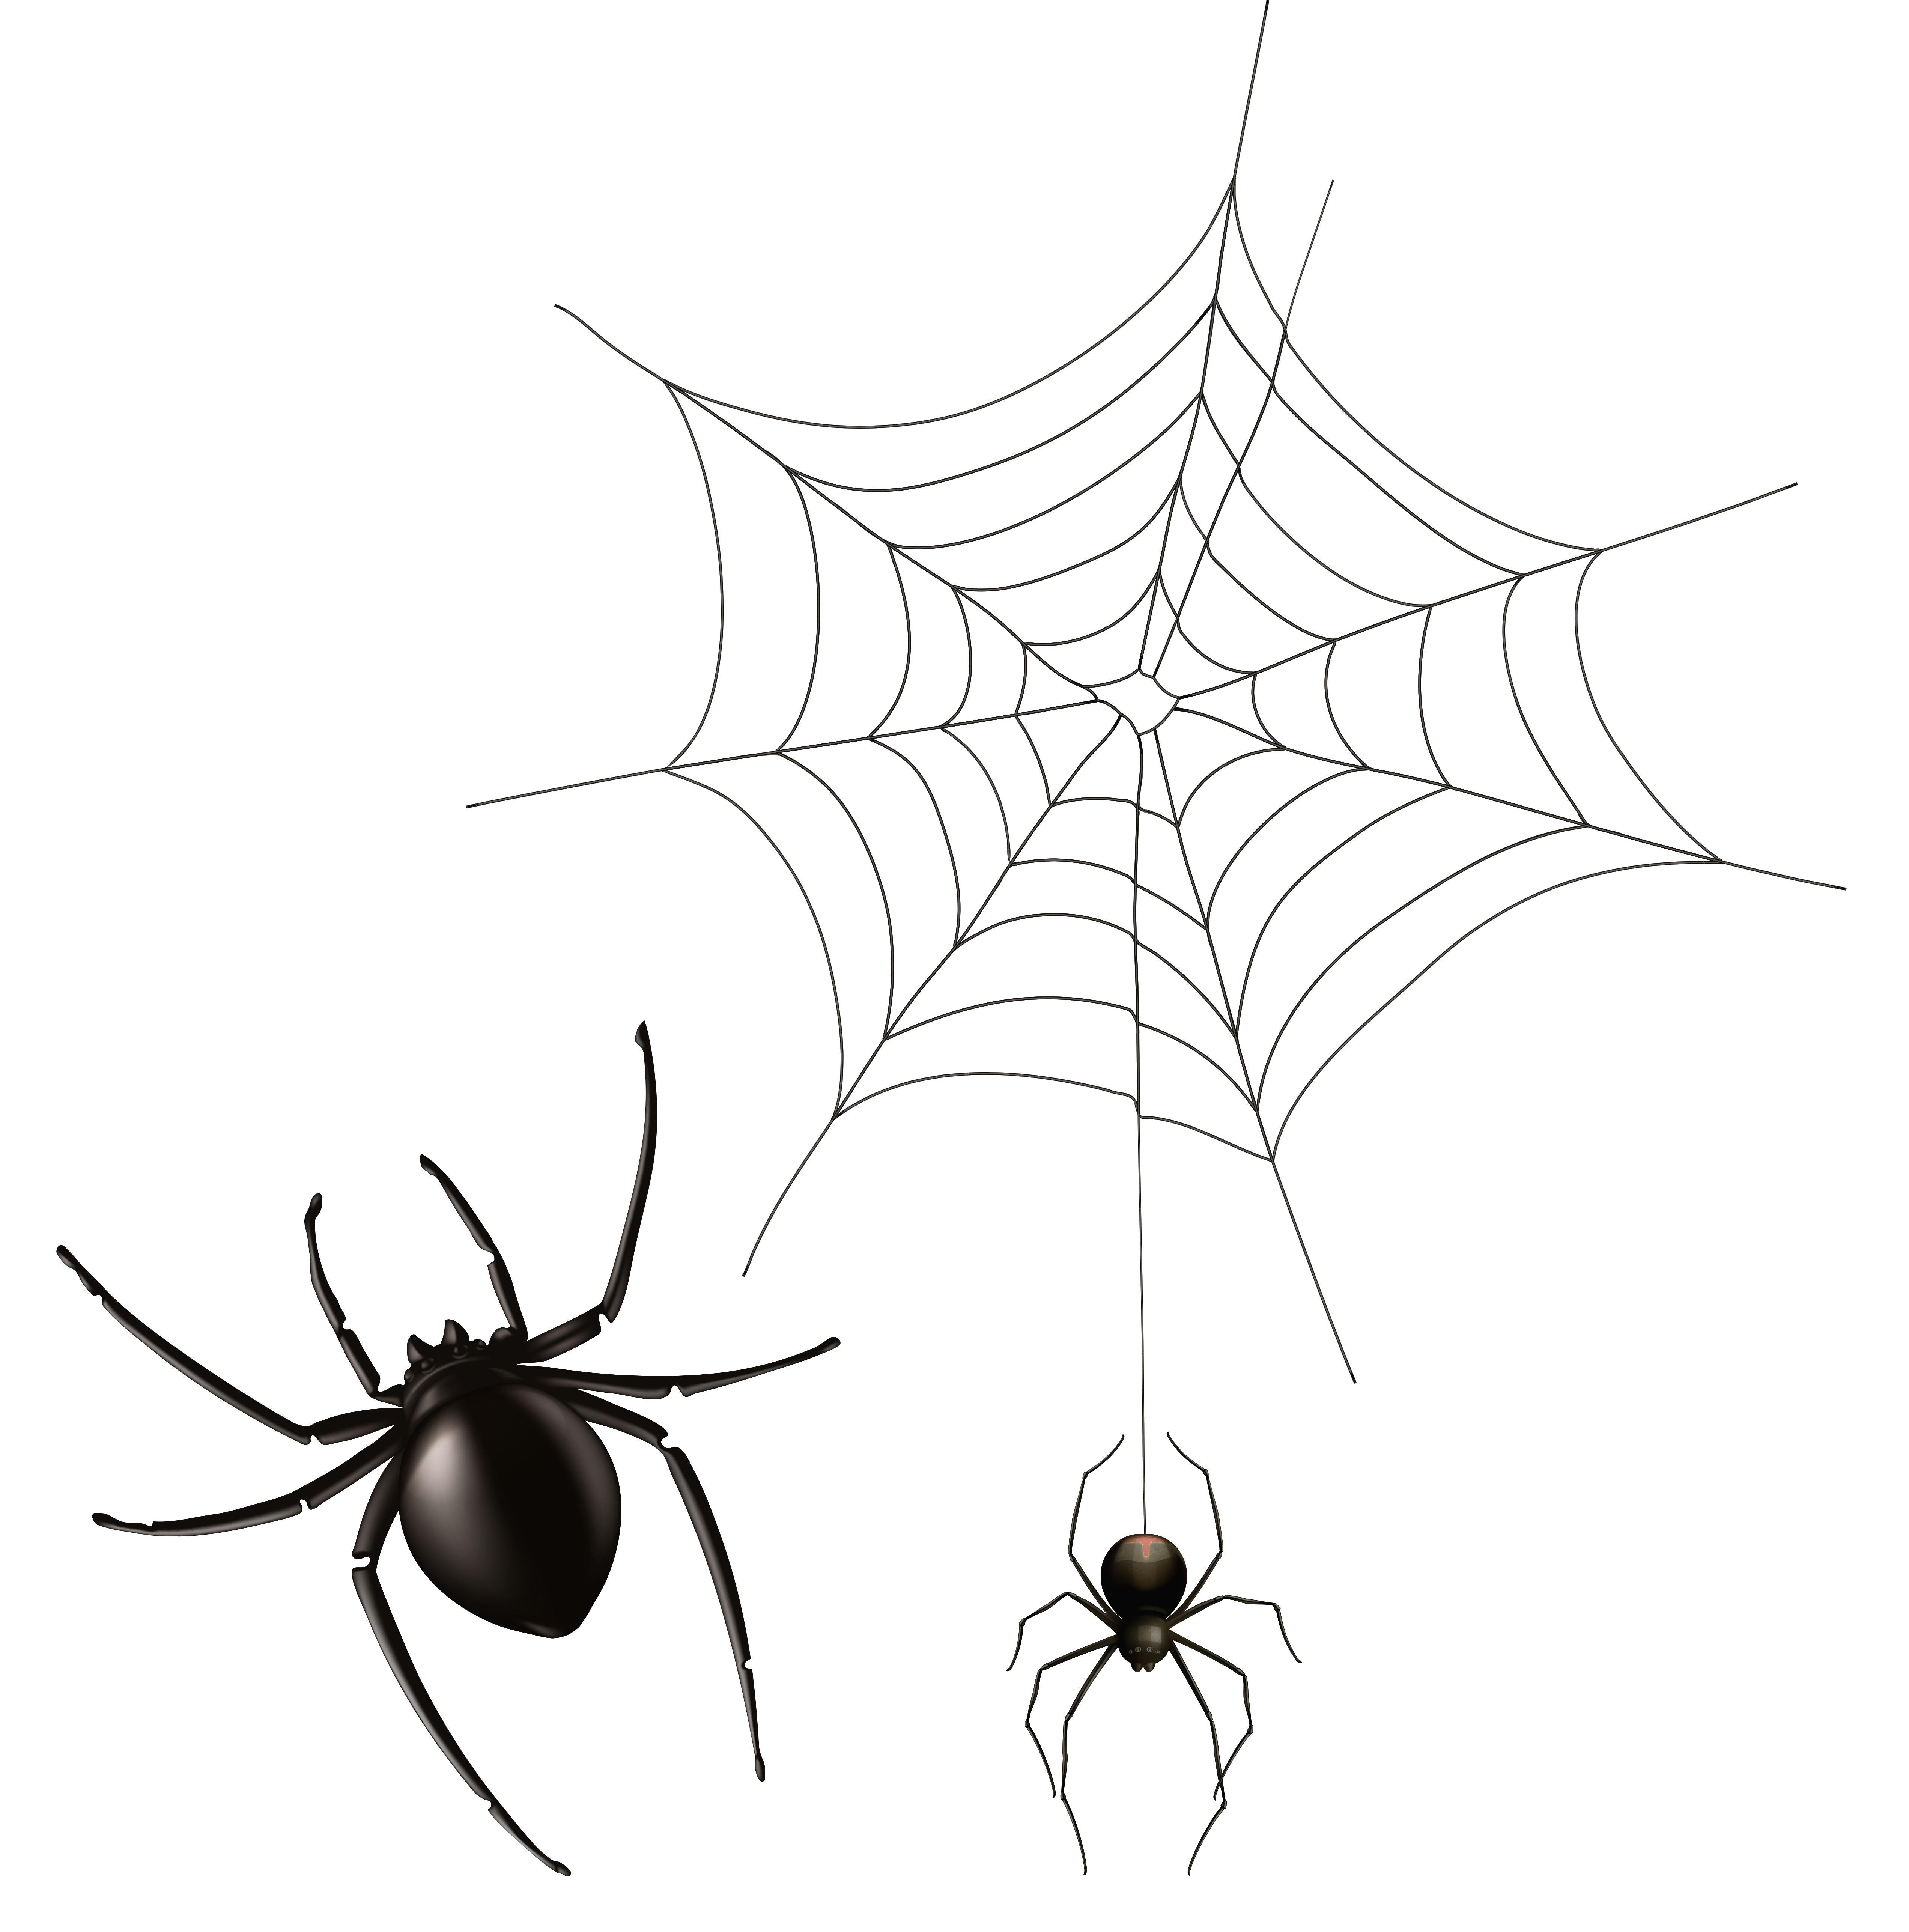 5087x5148 Spider And Cobweb Png Clipart Imageu200b Gallery Yopriceville